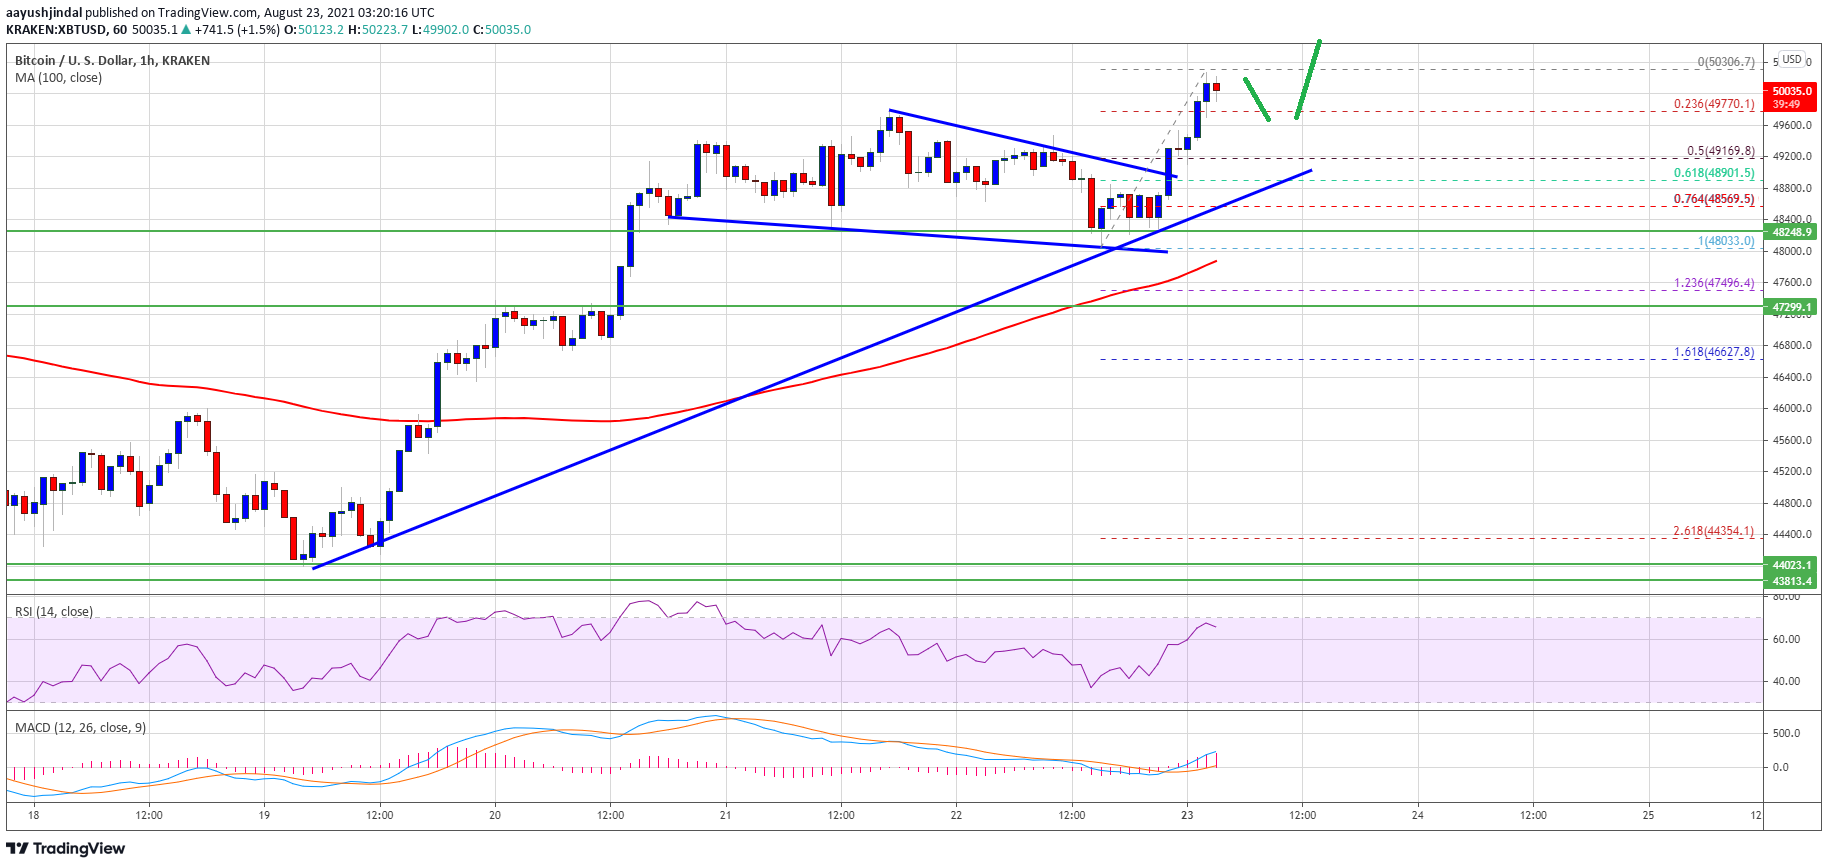 TA: Bitcoin Breaks $50K, Why BTC Could Continue To Gain Momentum